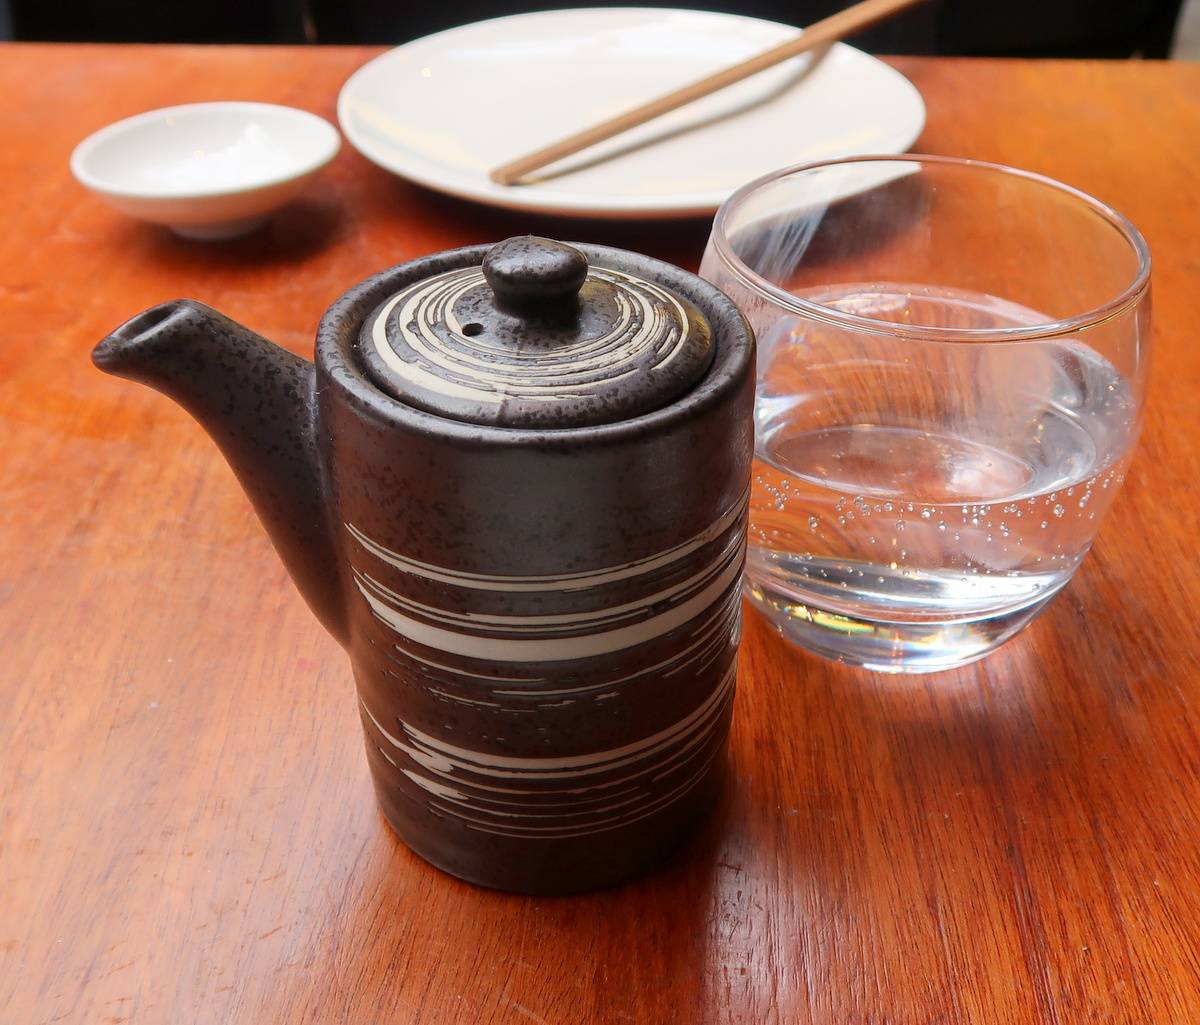 Tsunami Soy Sauce and Water